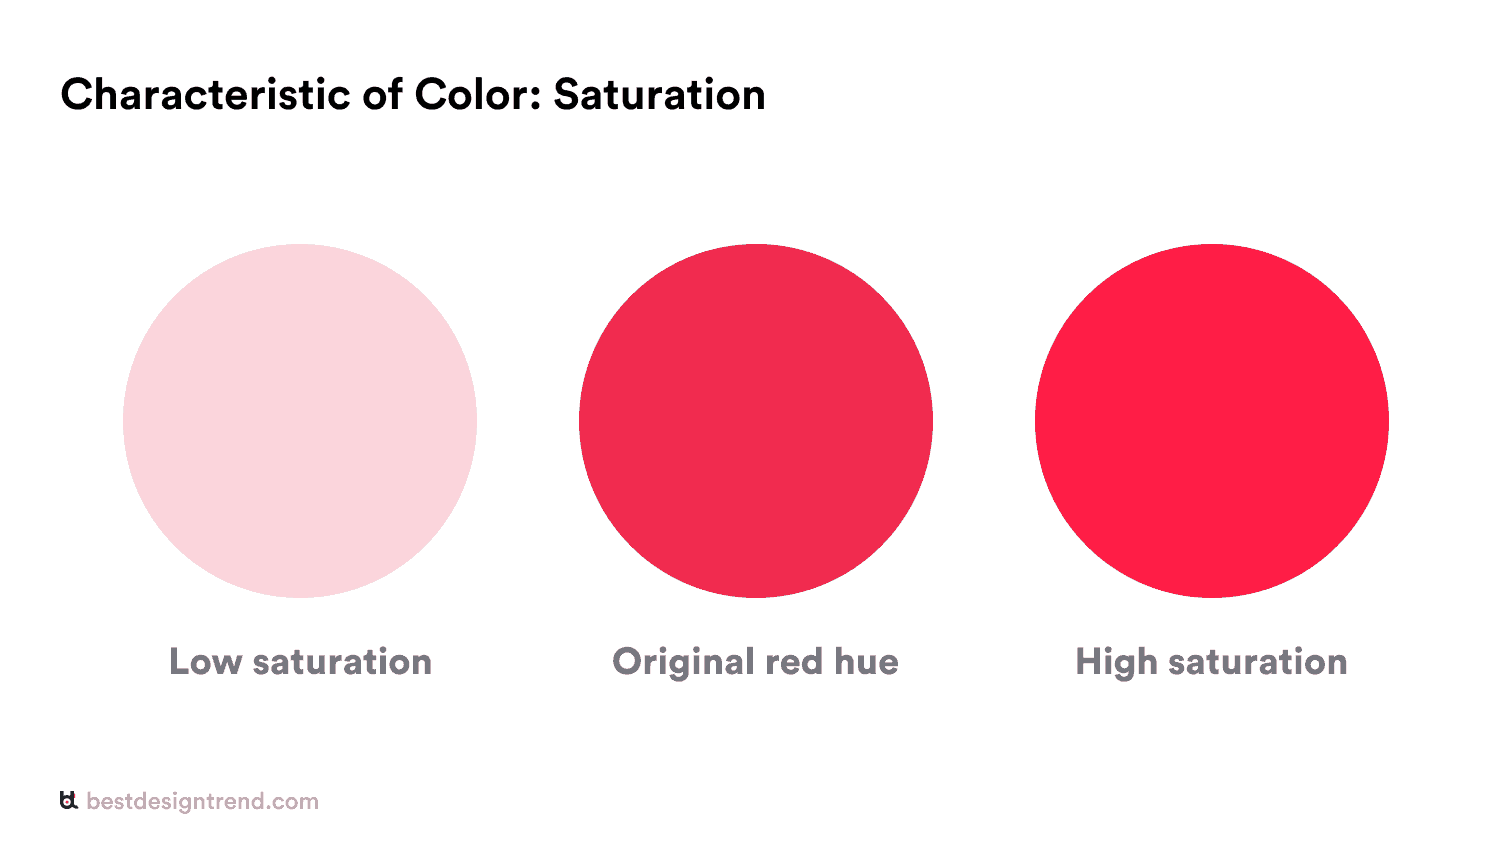 characteristic of color: saturation